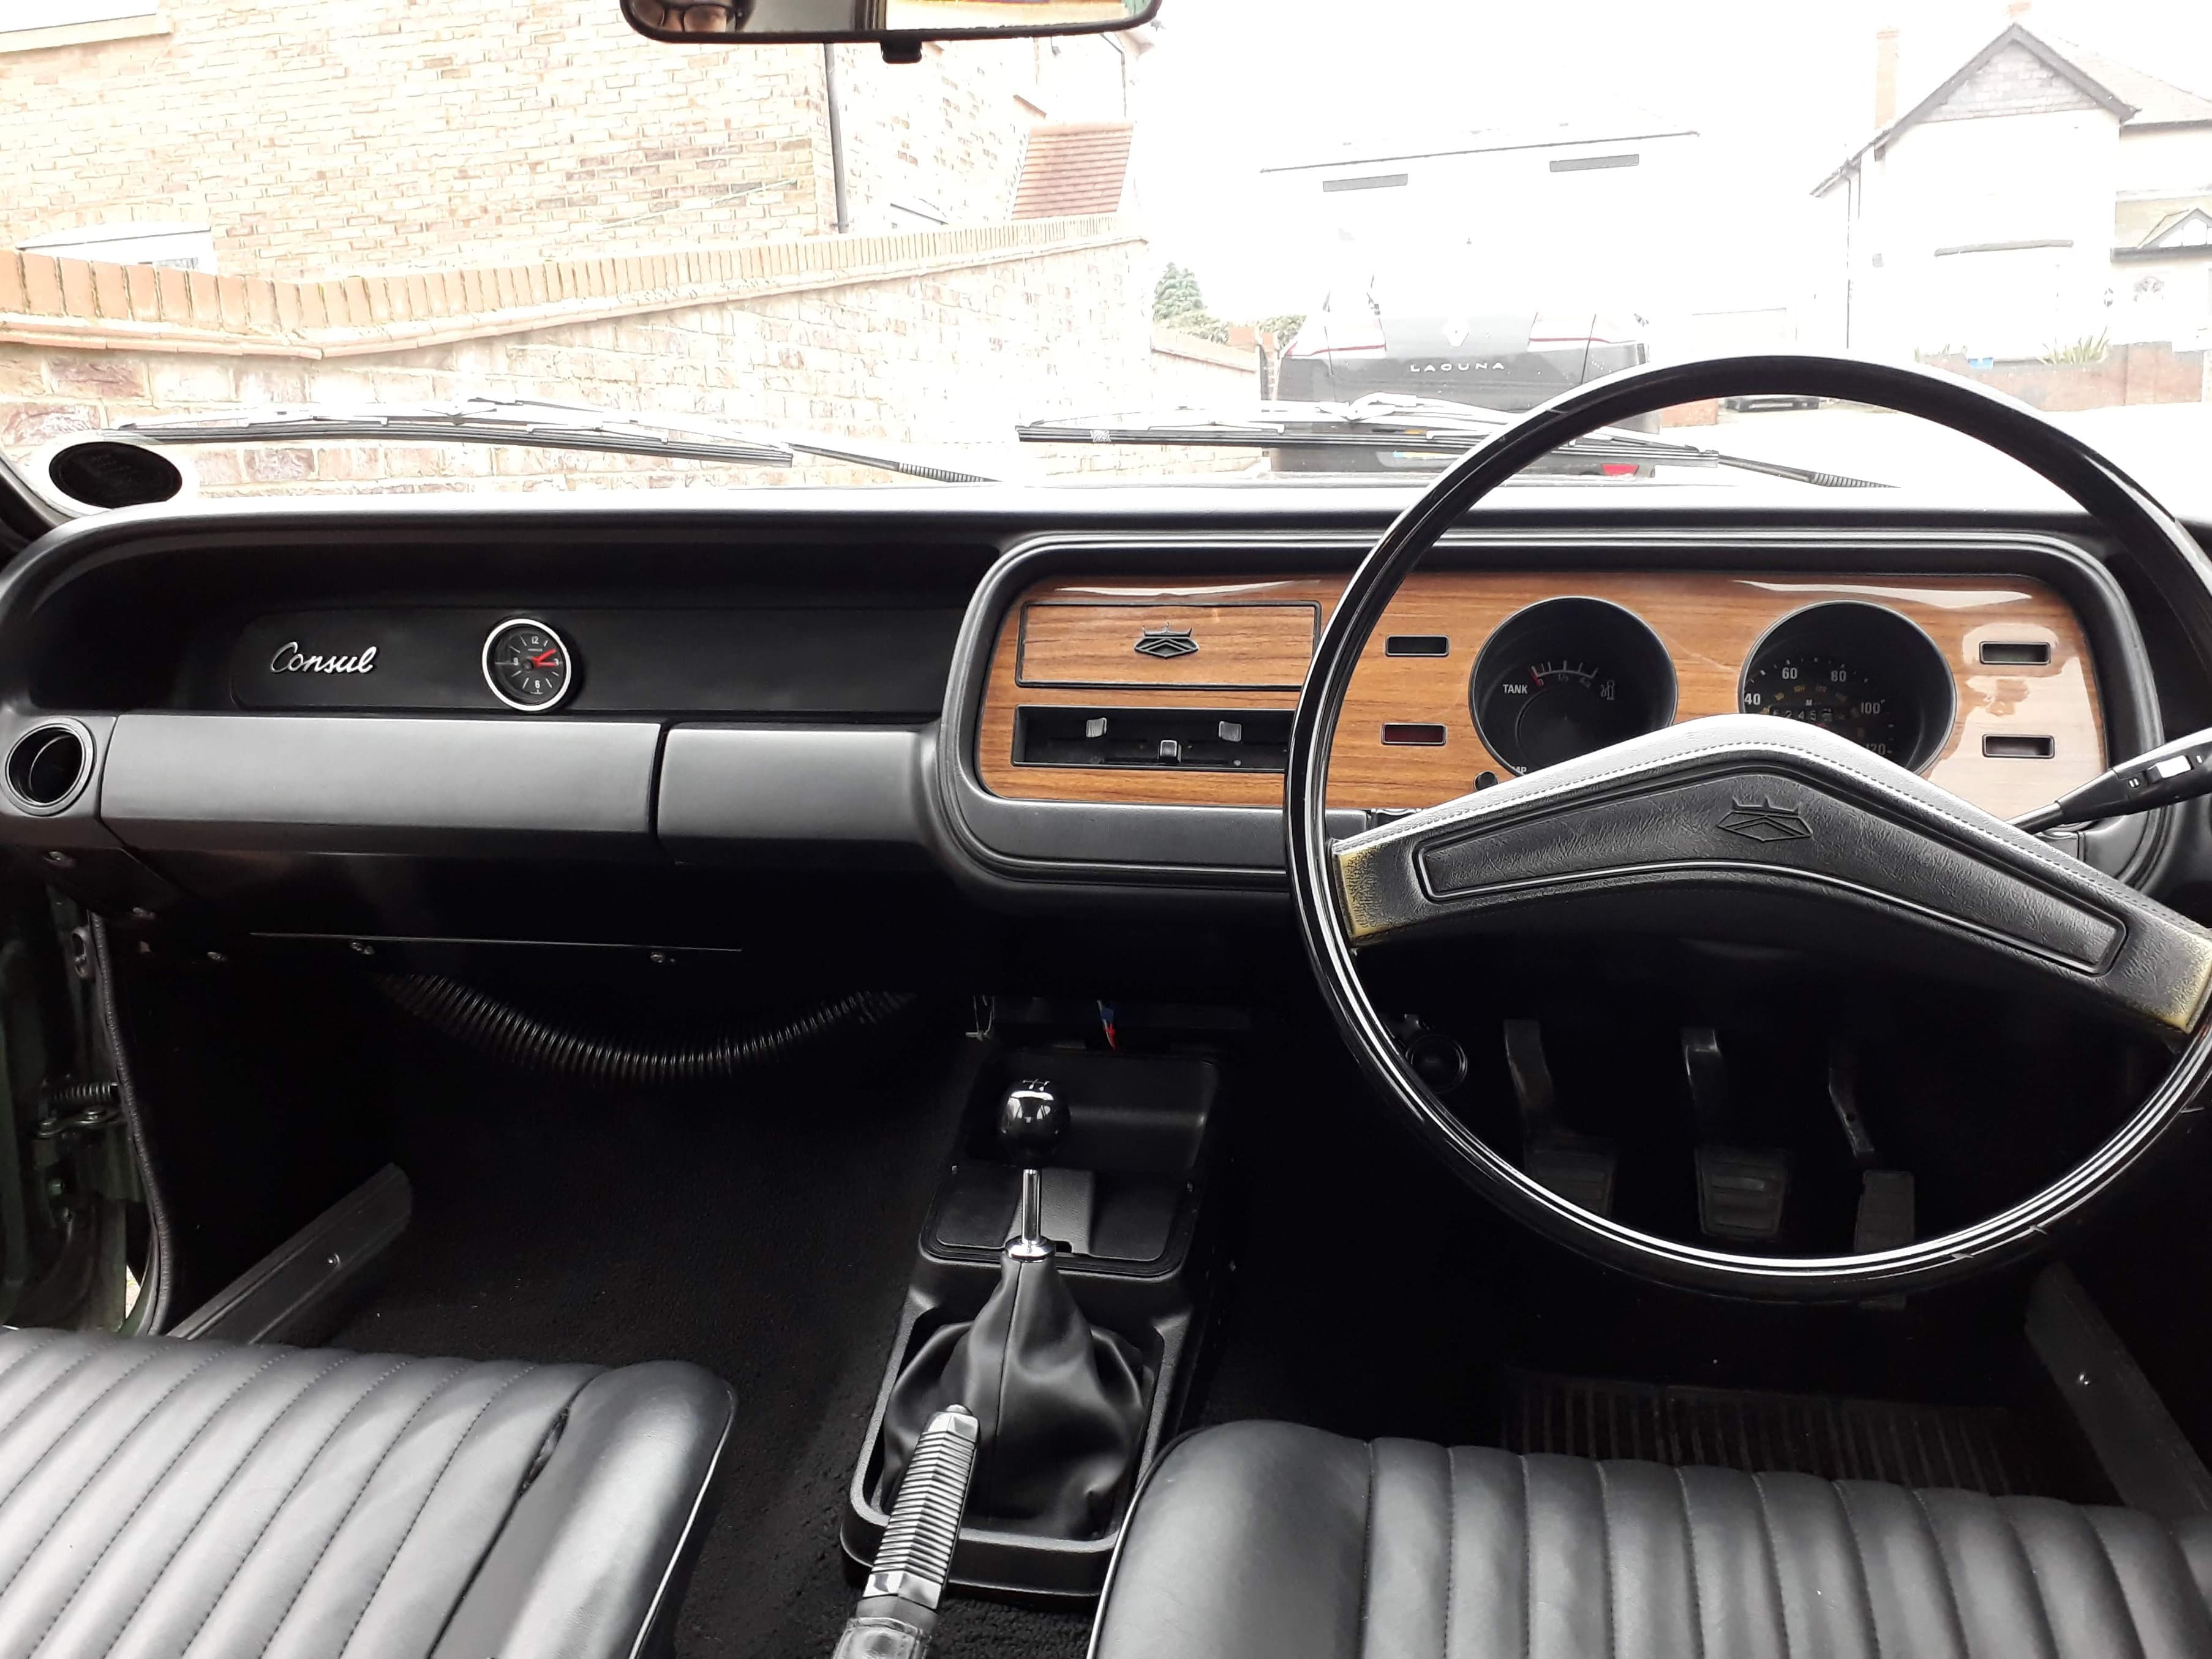 Ford Consul dashboard